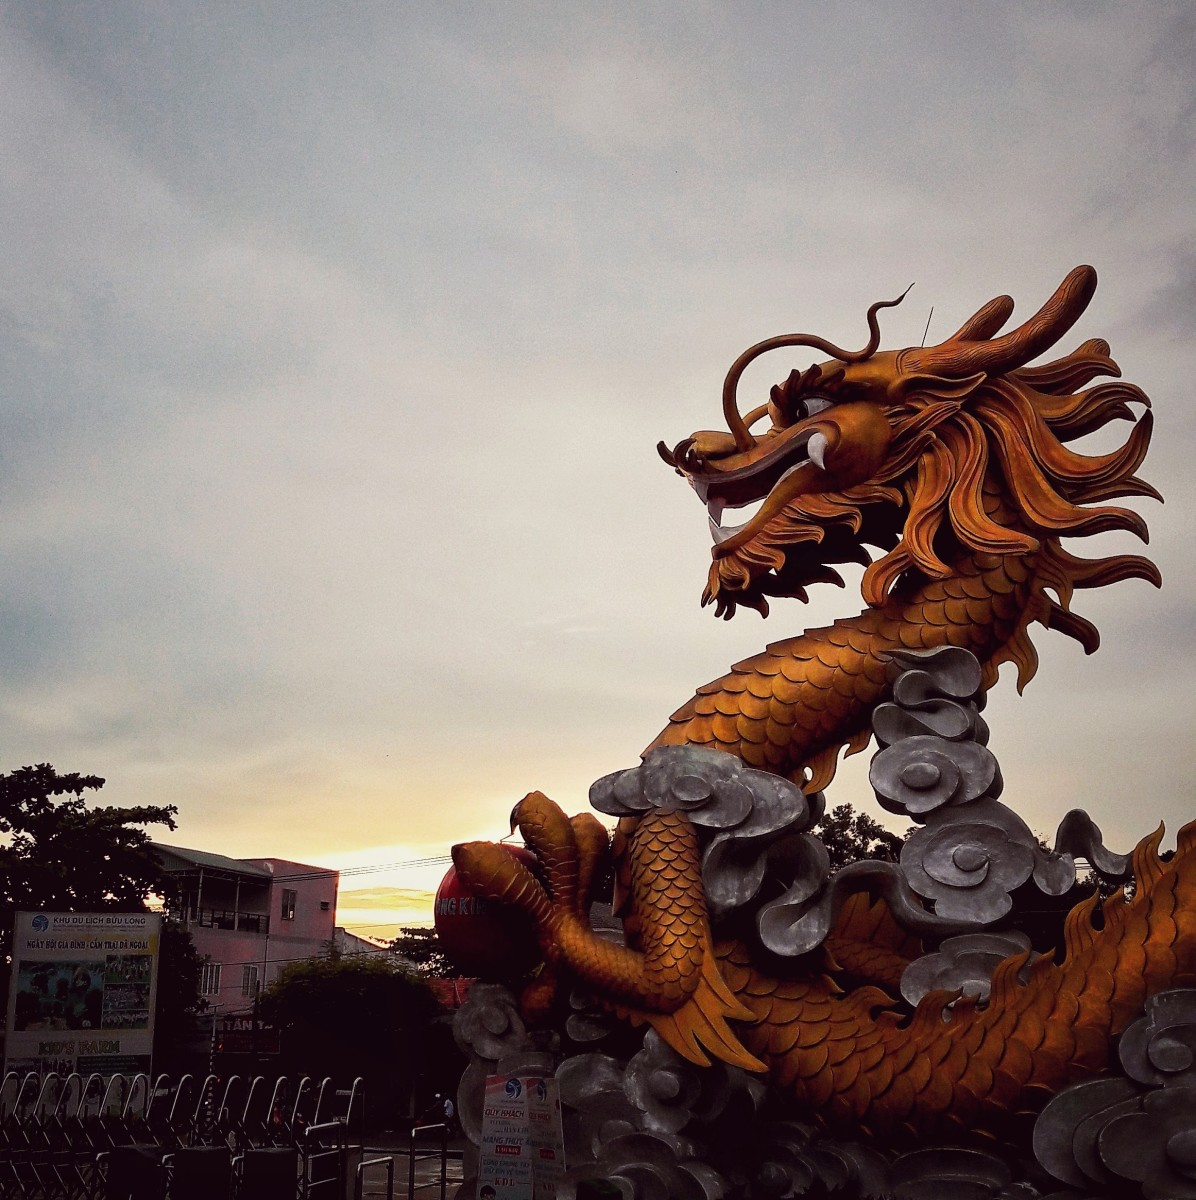 A dragon statue stands firmly at the entrance, simply illustrating the name Buu Long - Long means dragons, Buu means rare and sacred.